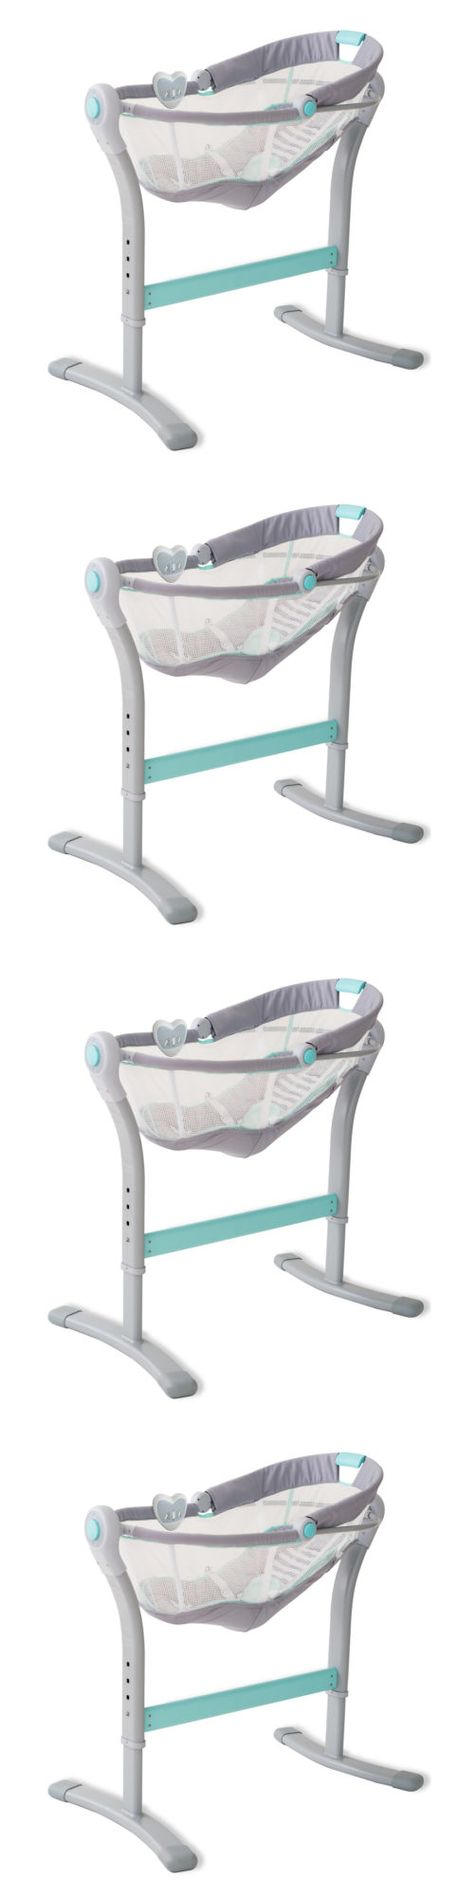 Newborn Bassinet Reflux Pinterest Пинтерест